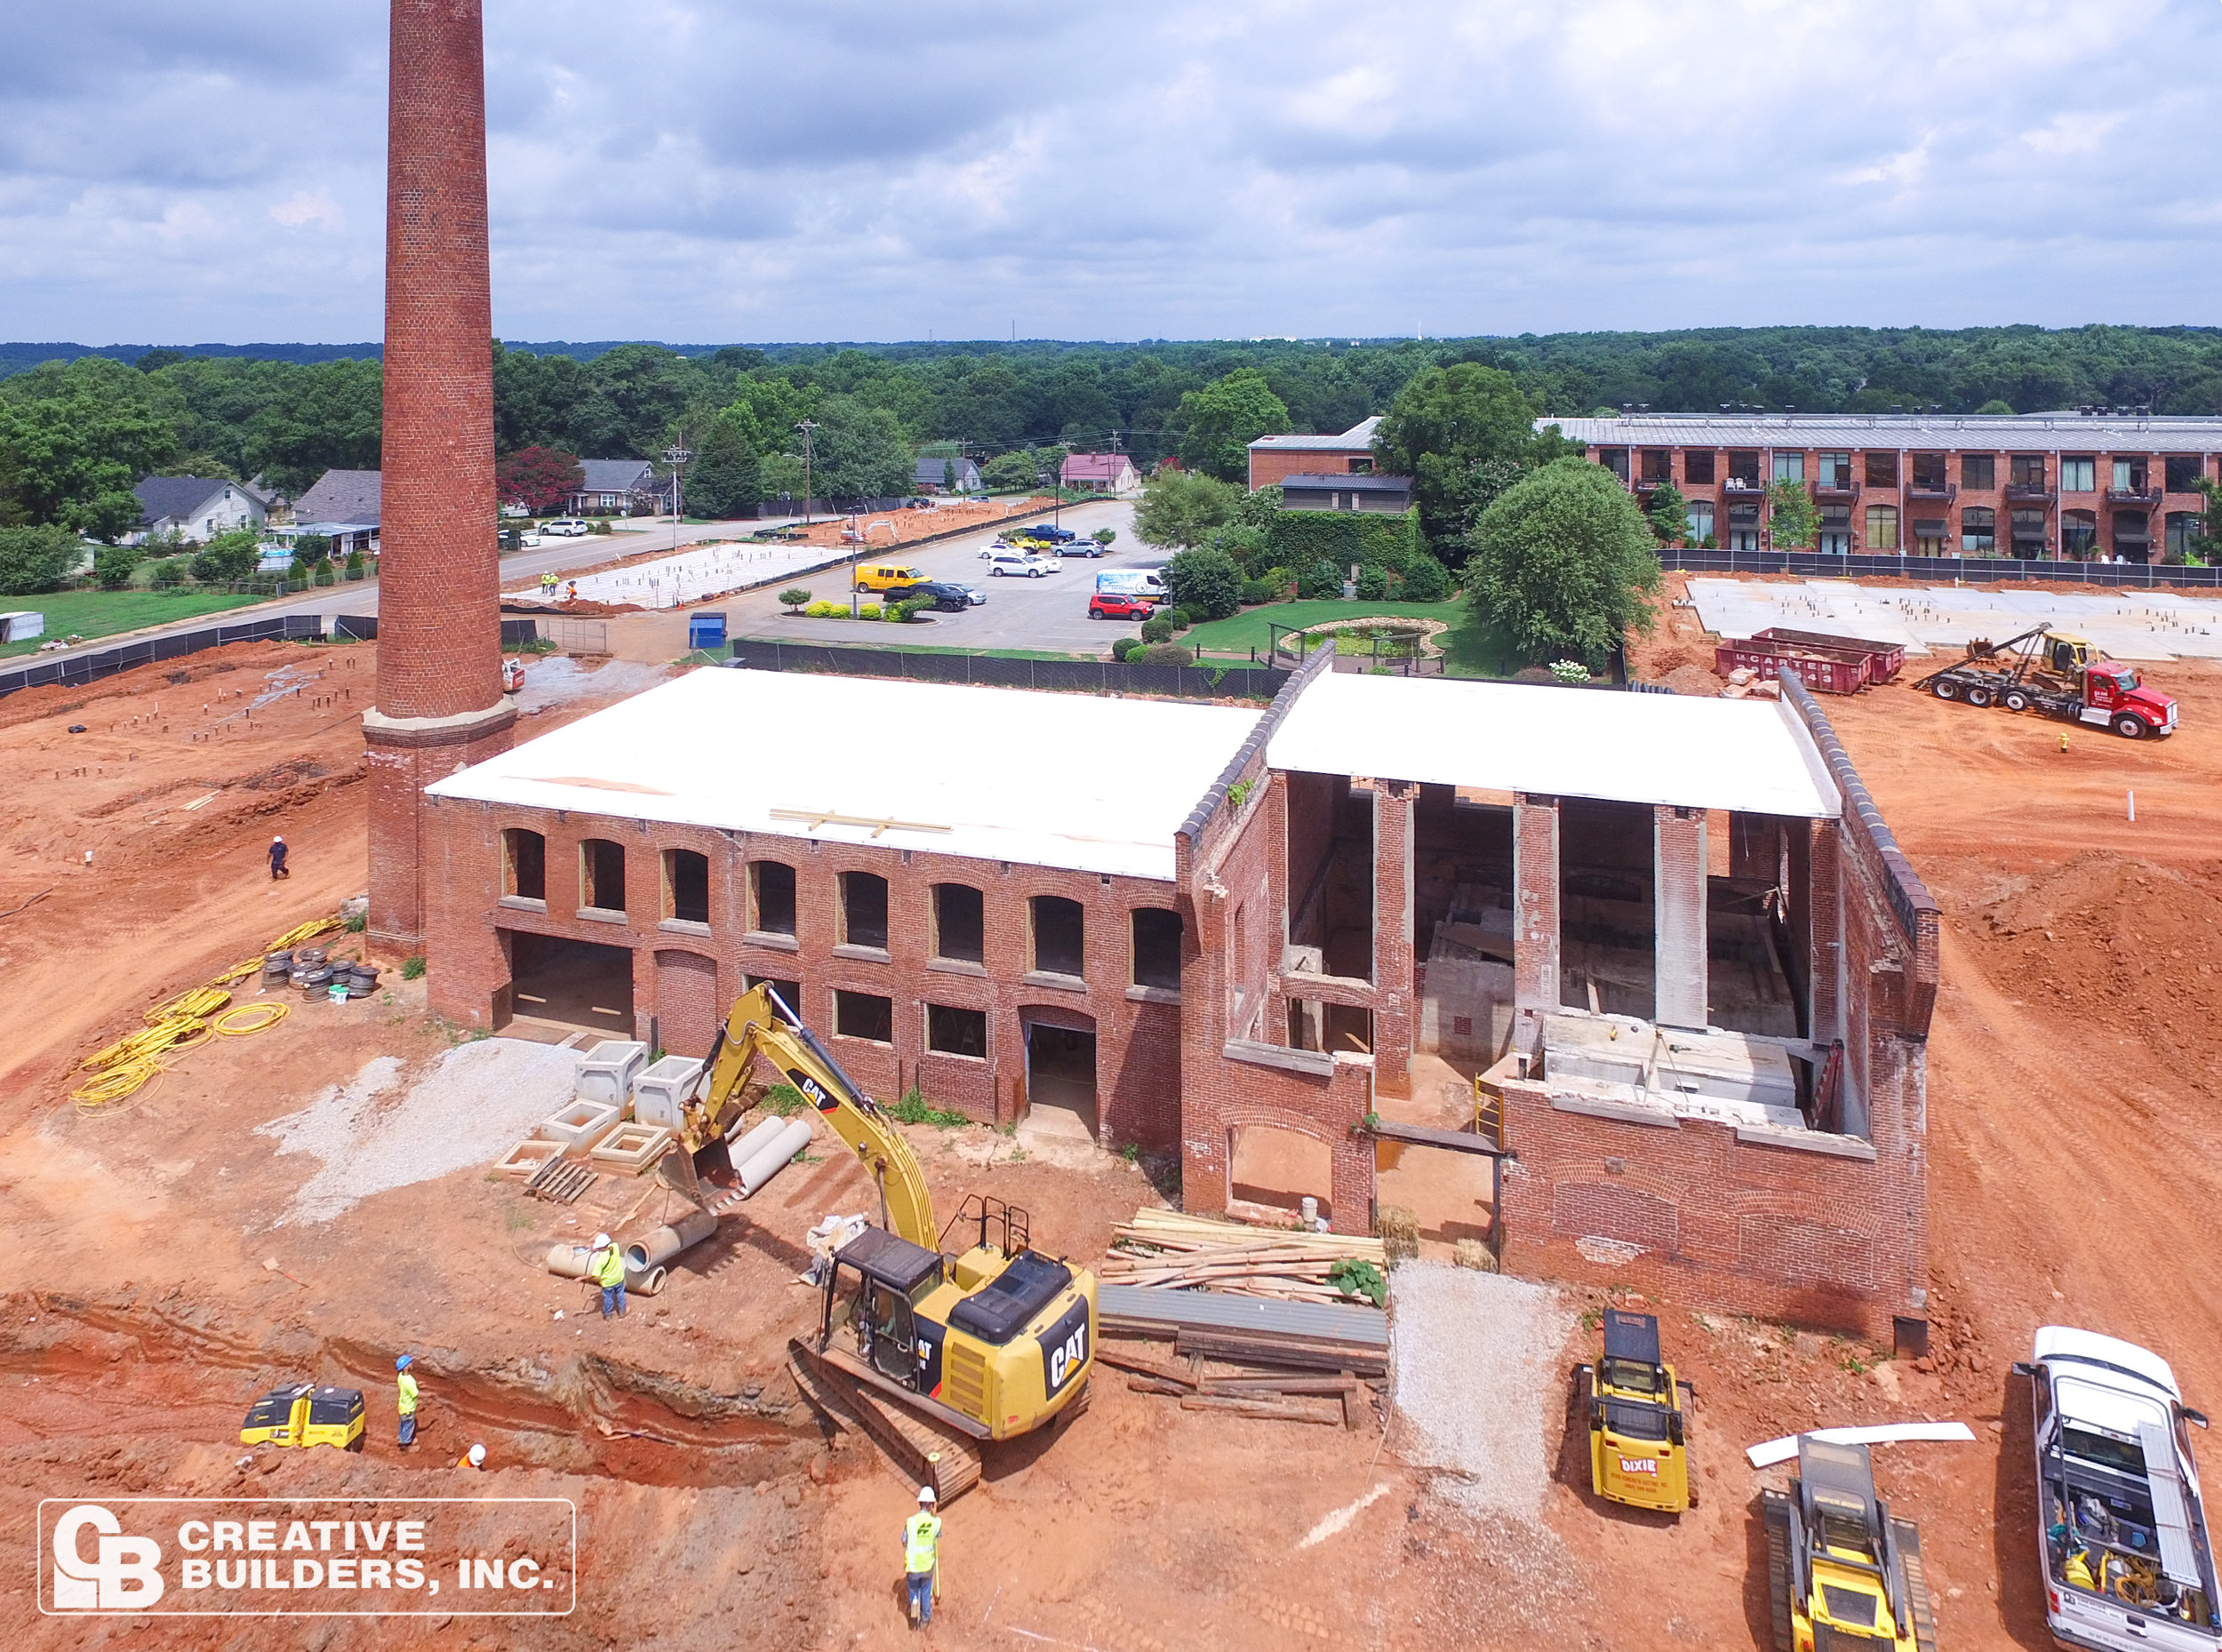 cotton-mill-2018-07-16-11.jpg